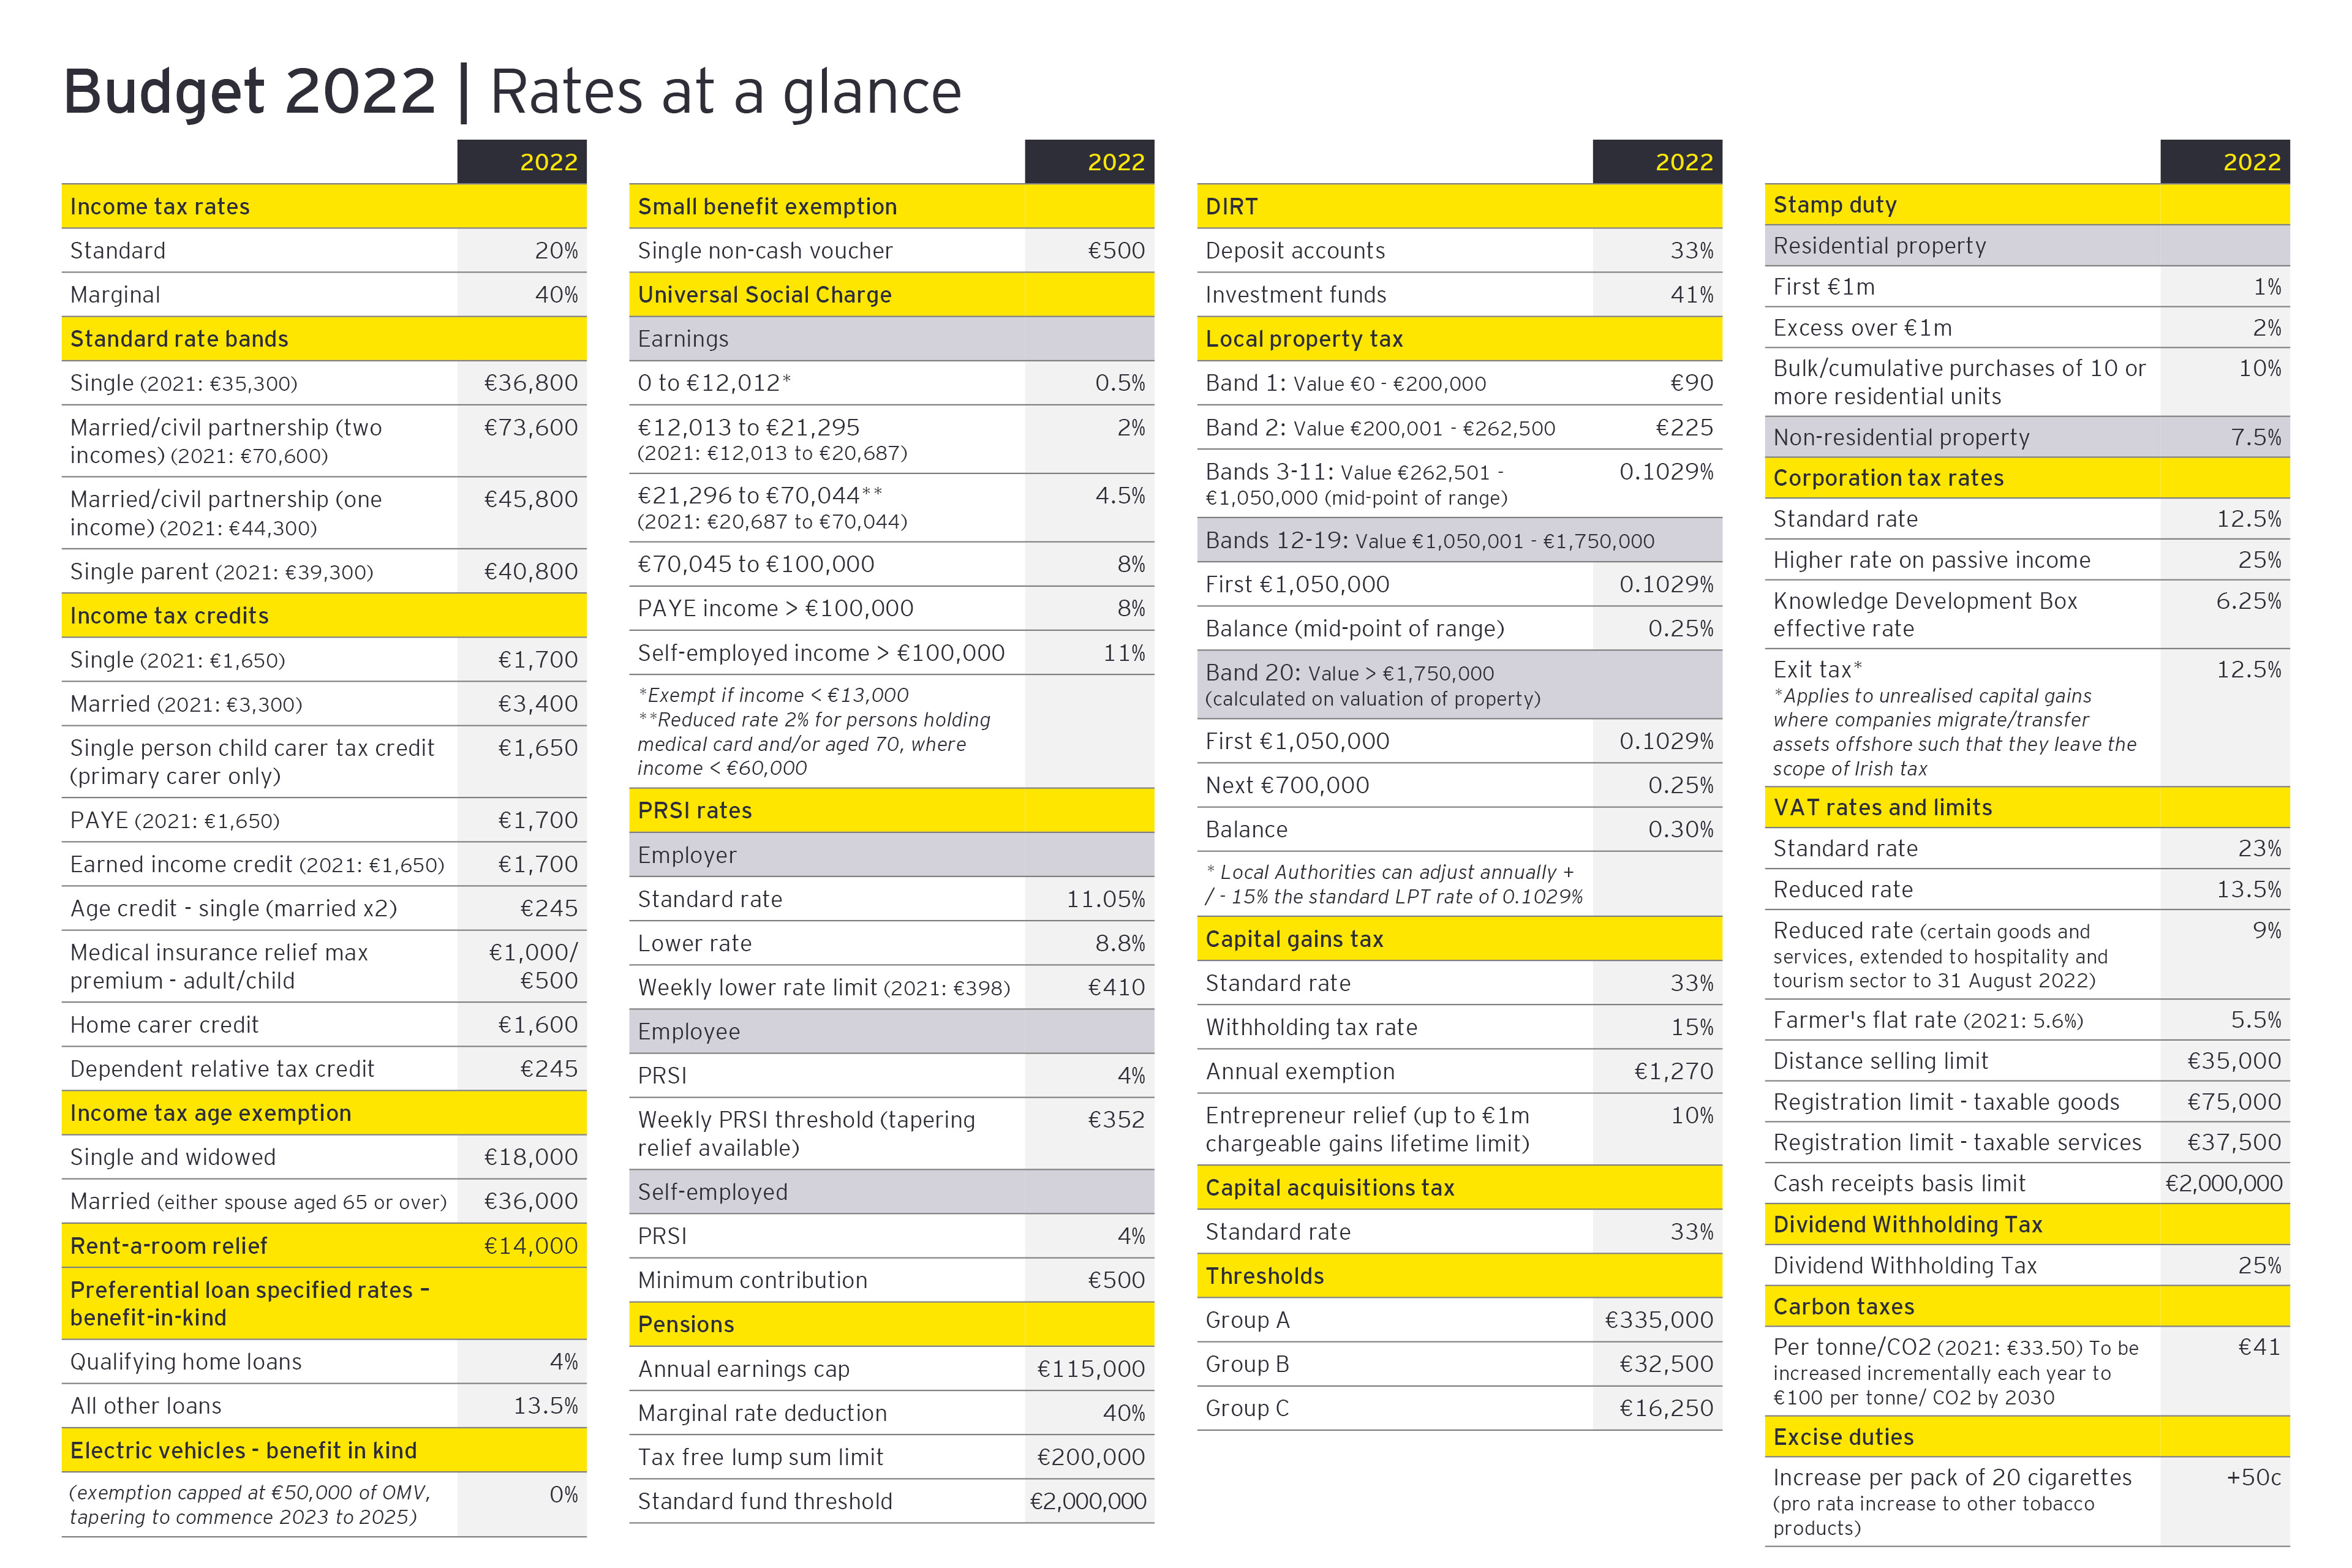 Rates at a glance